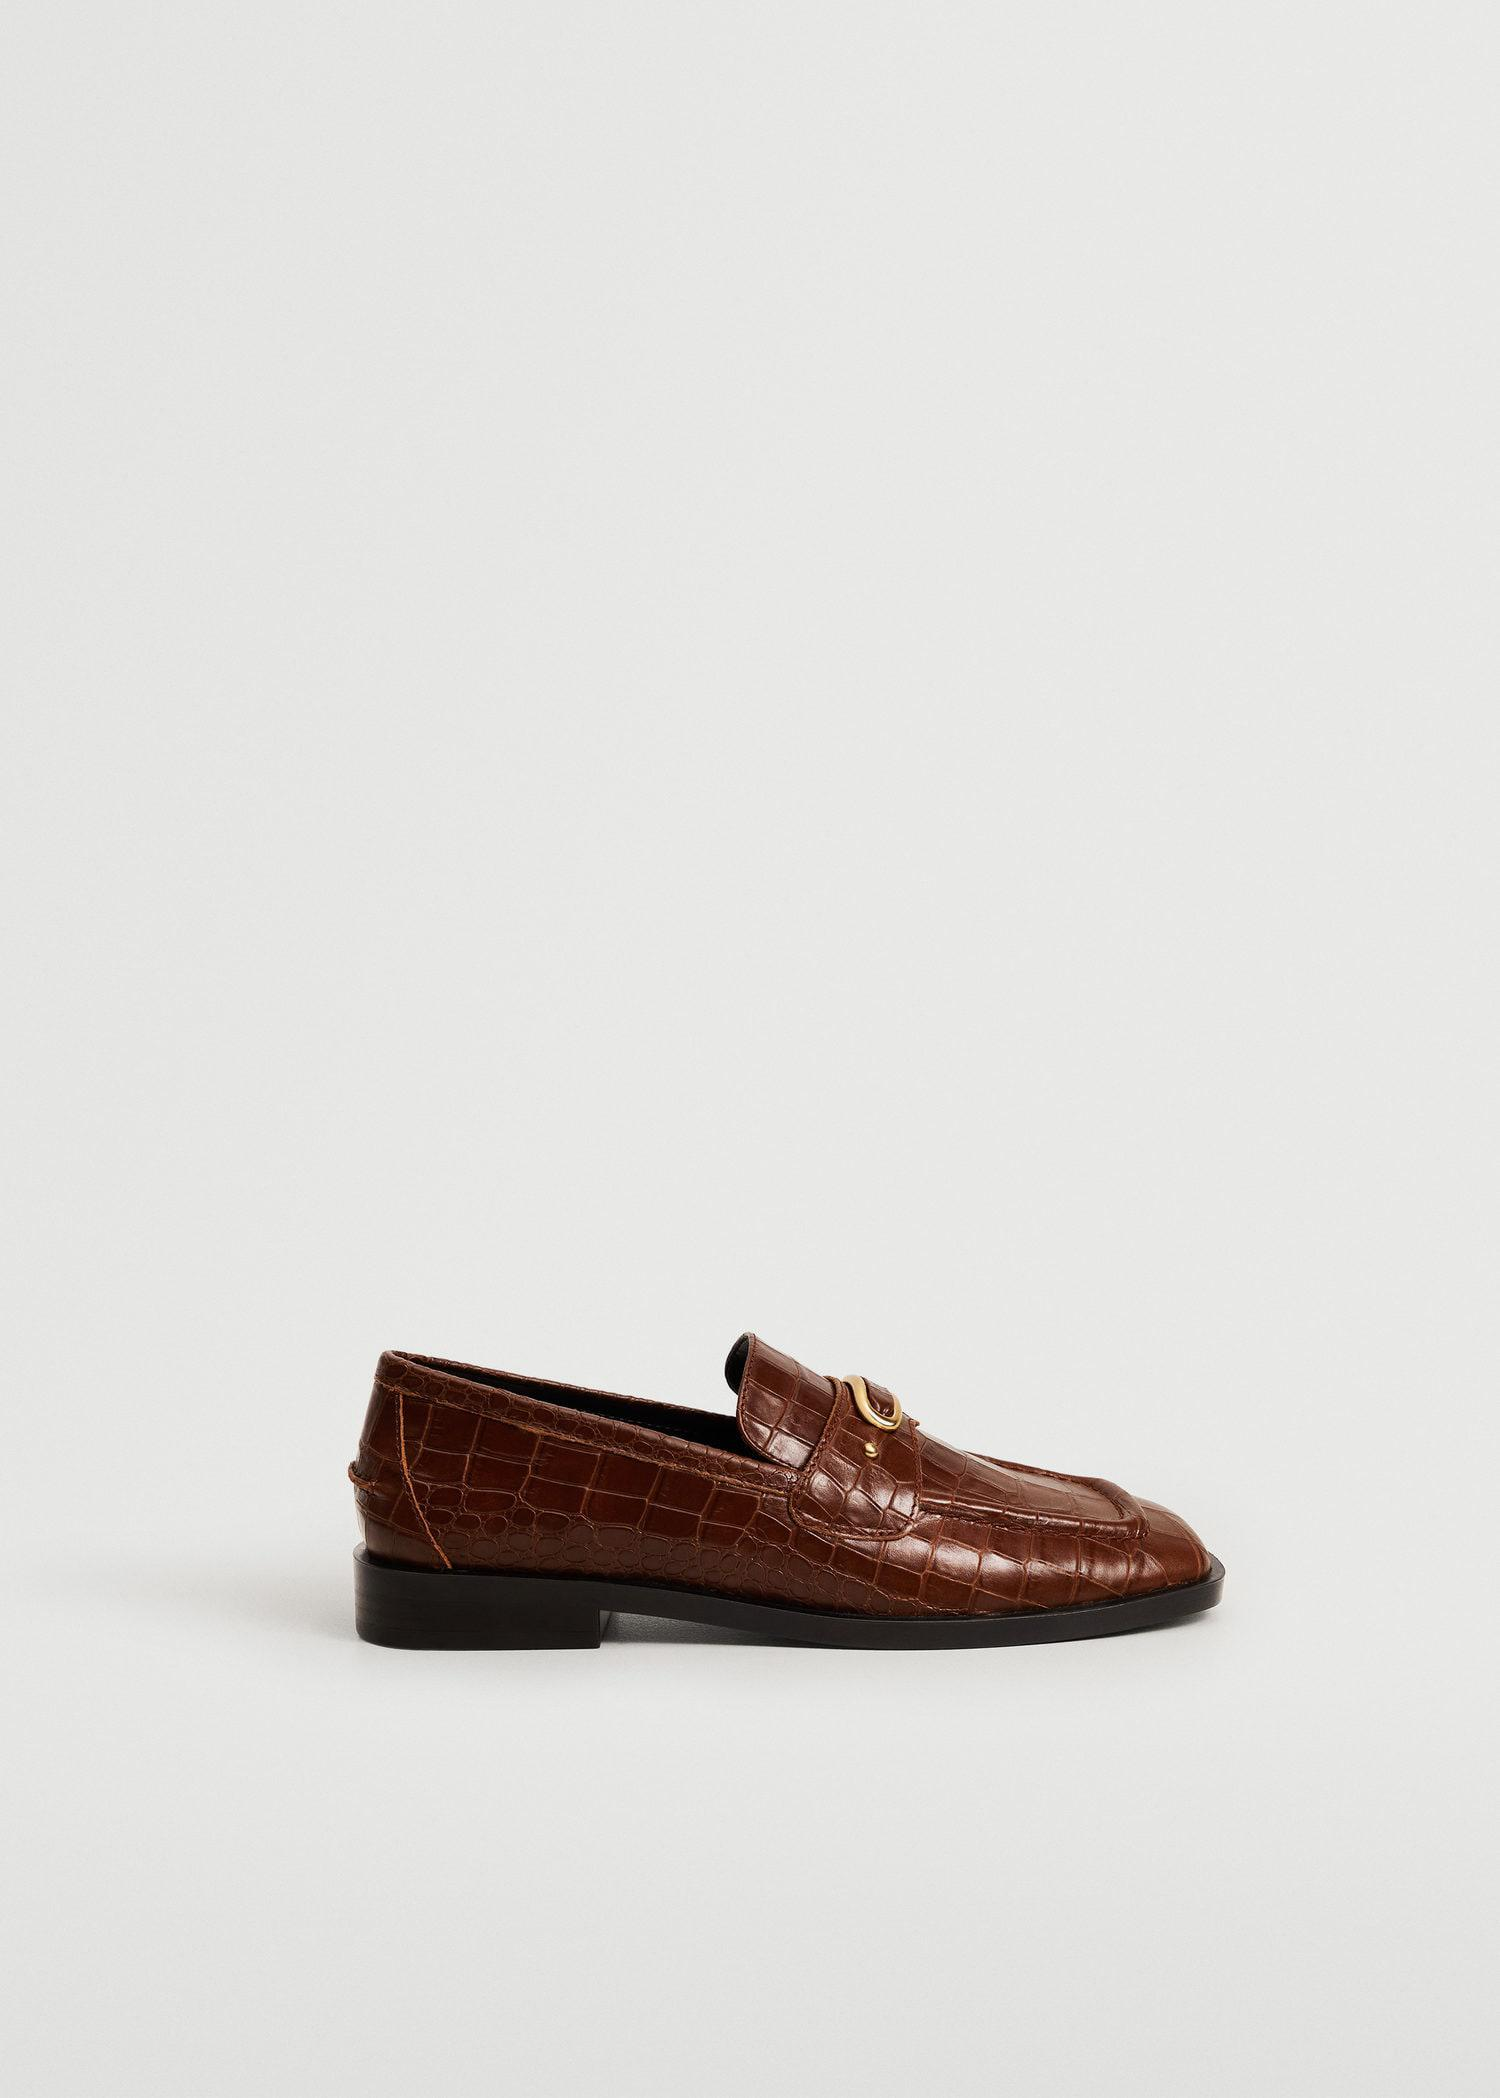 Buckle leather moccasins